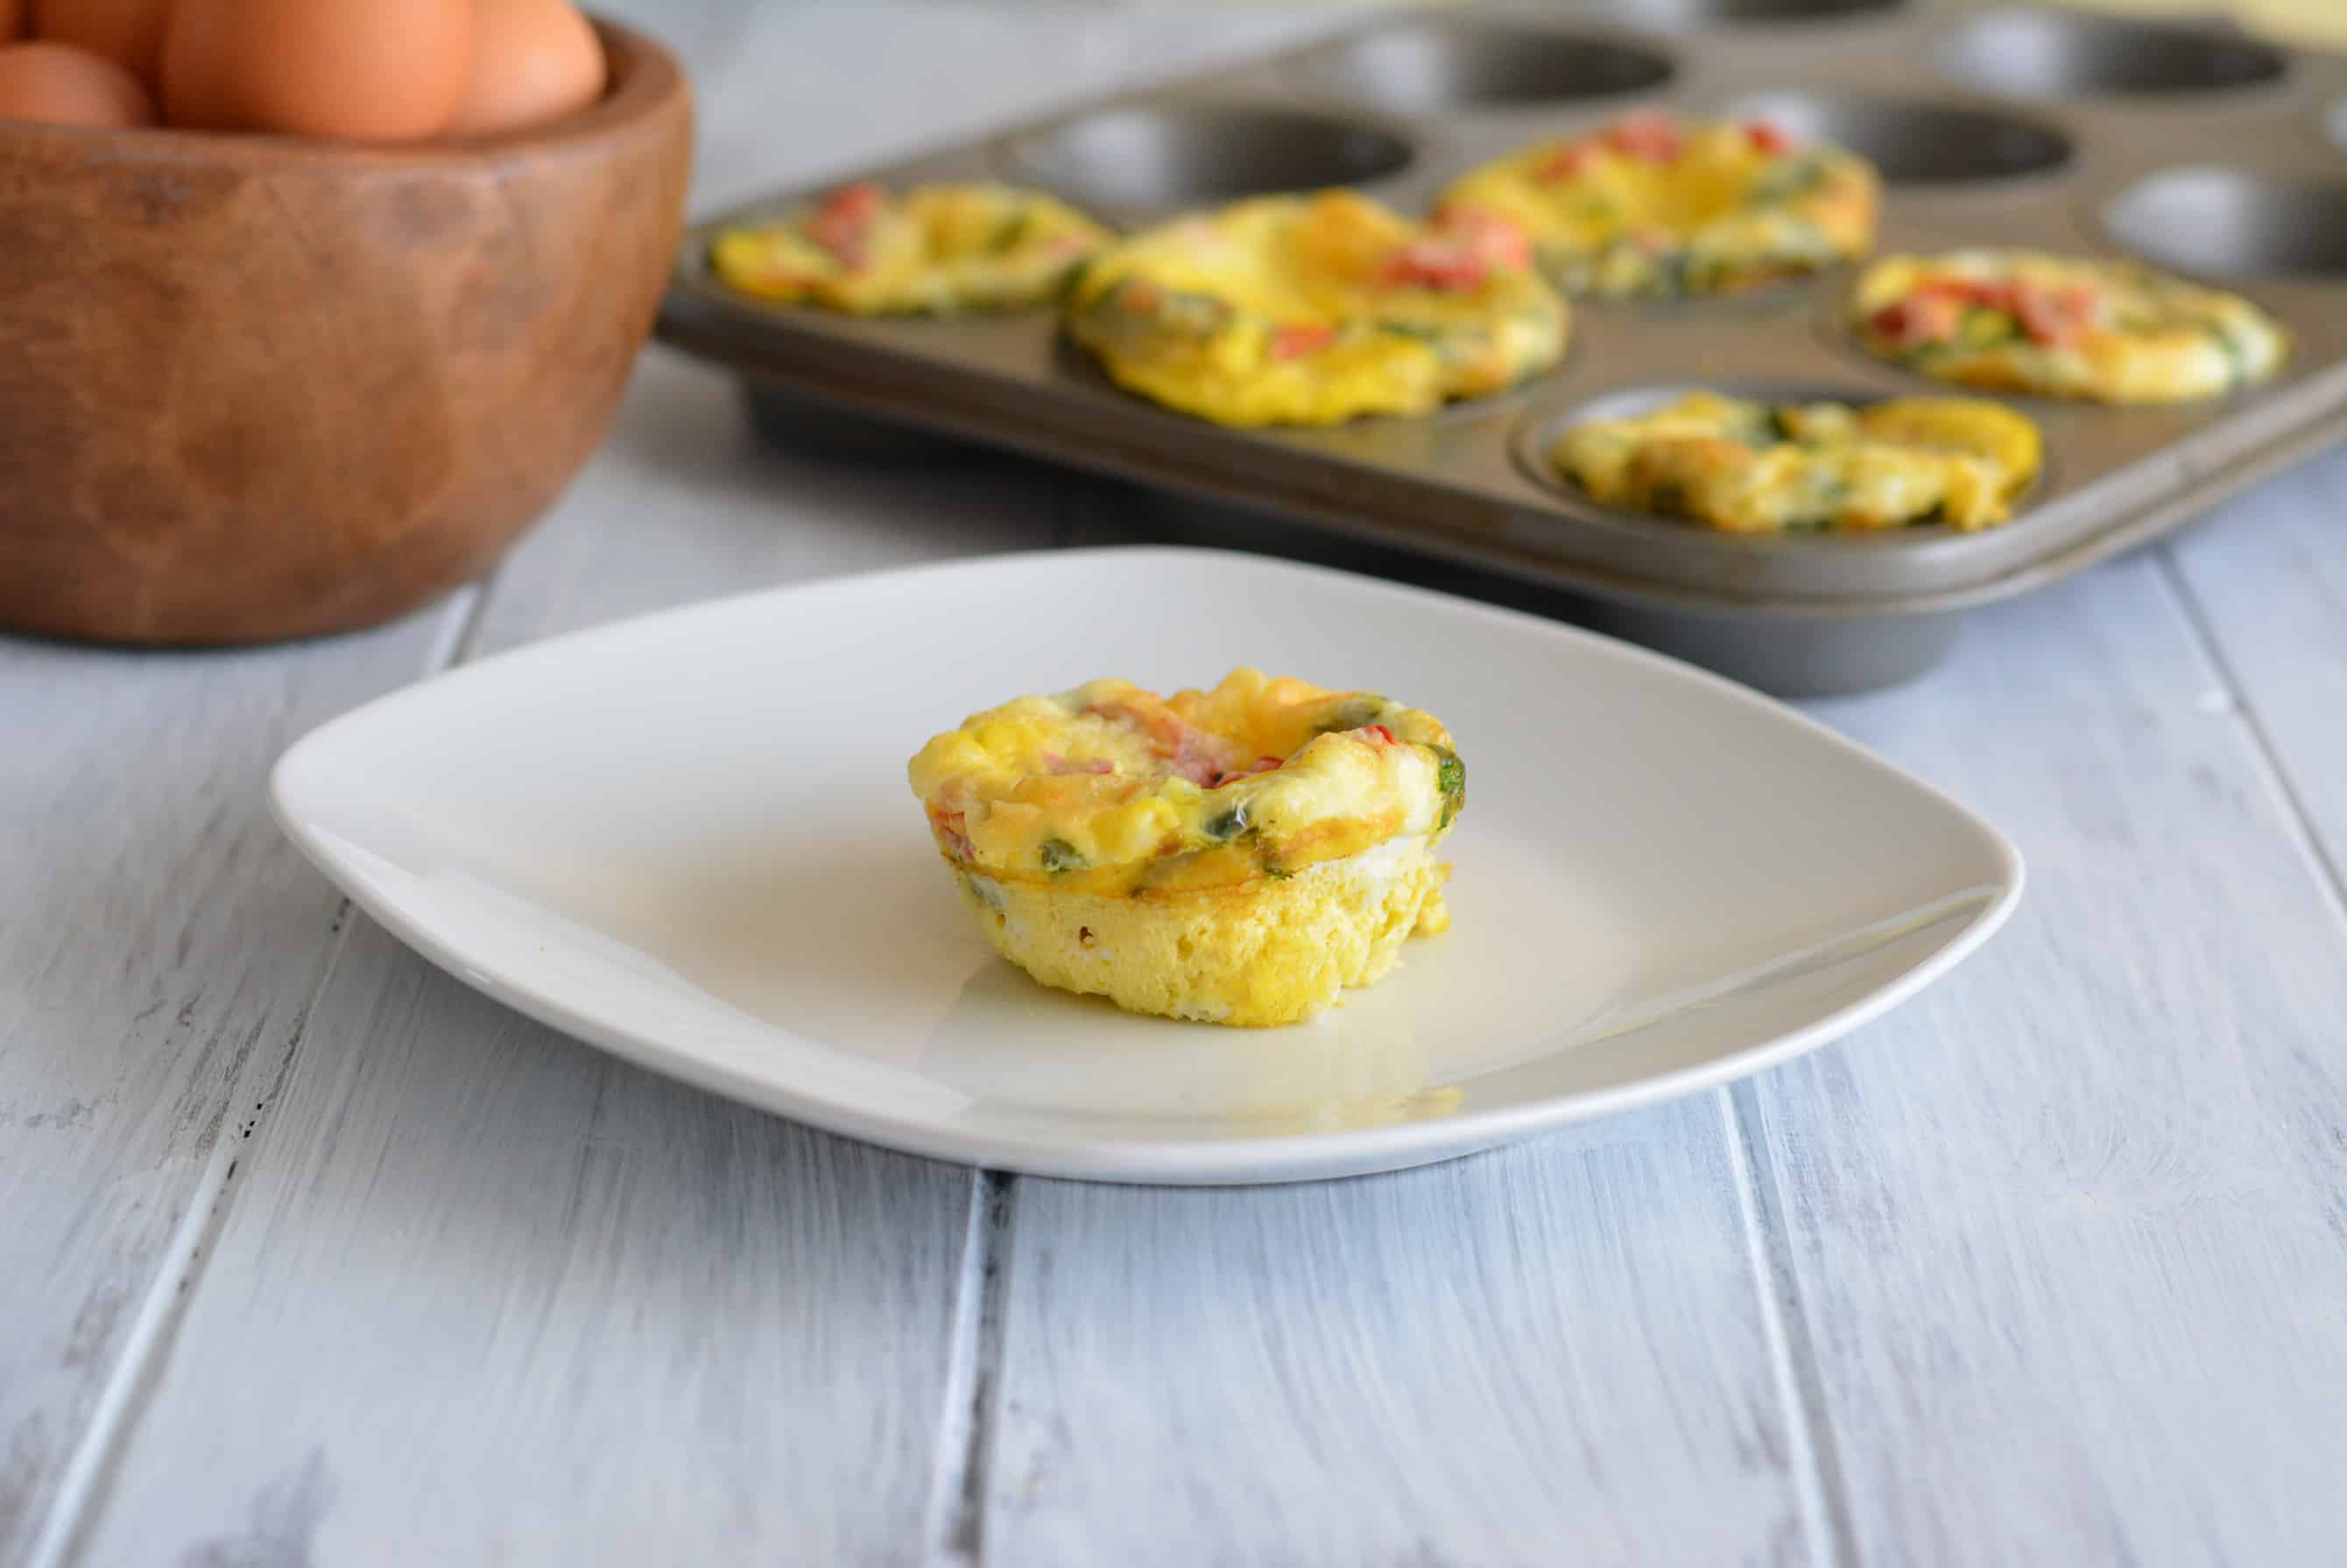 Roasted Pepper & Egg Breakfast Muffin on a white plate.